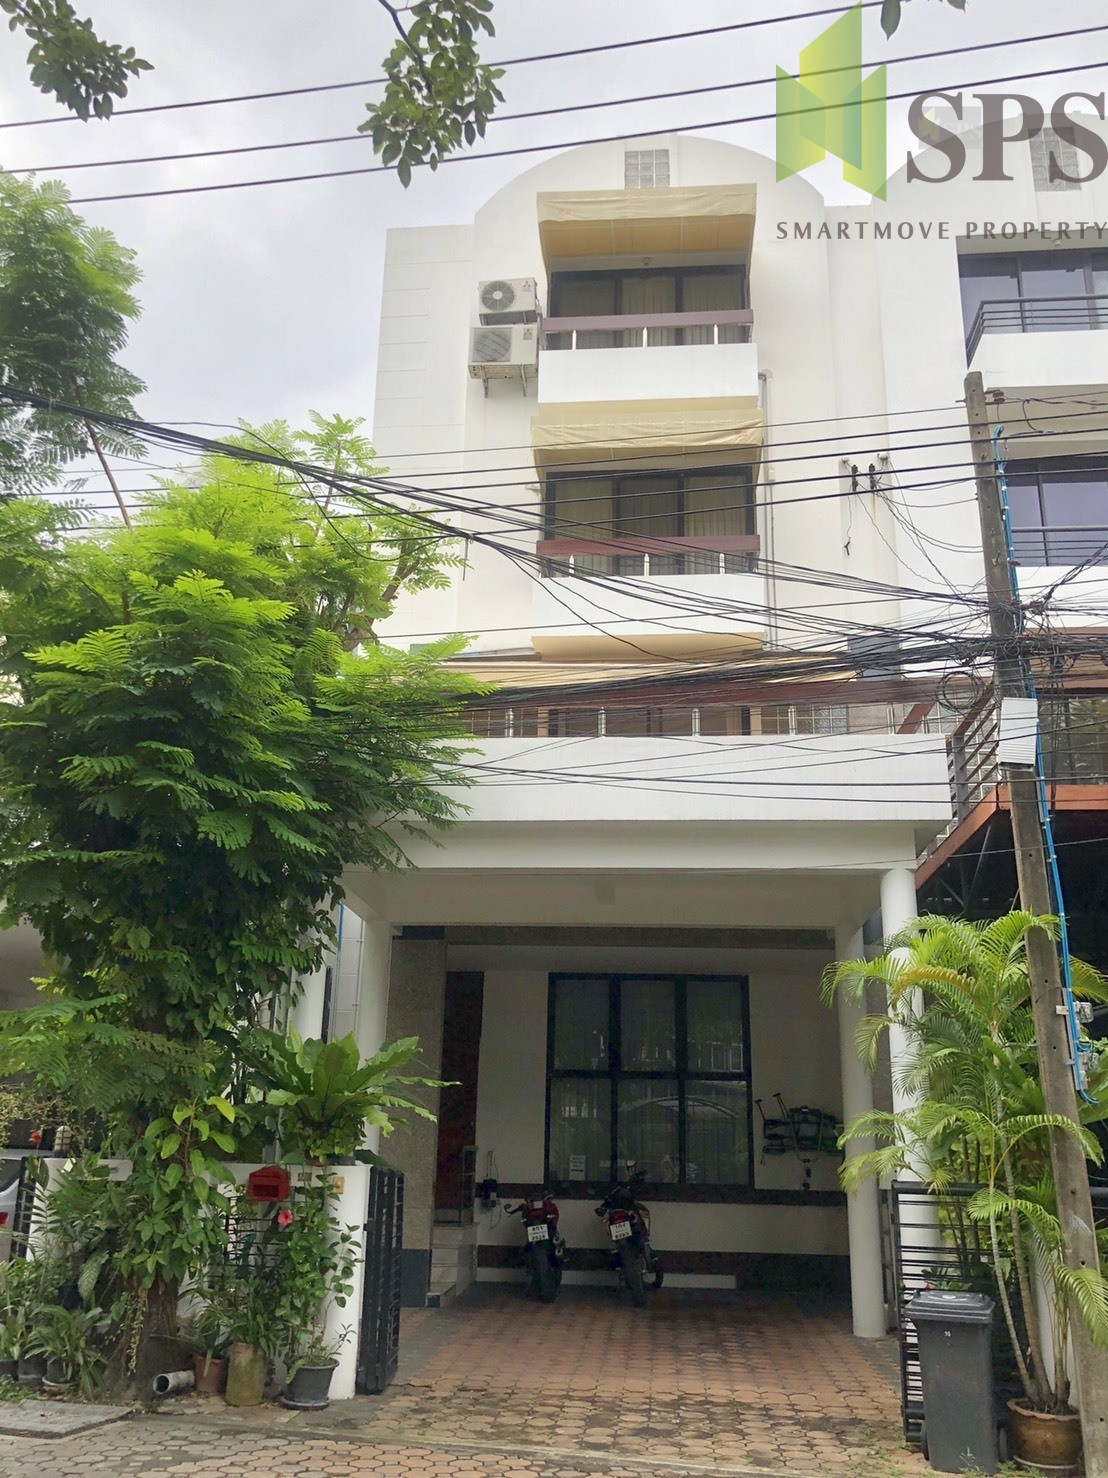 SALE Townhouse 4 beds in Moo Baan Home Place (SPSP32)